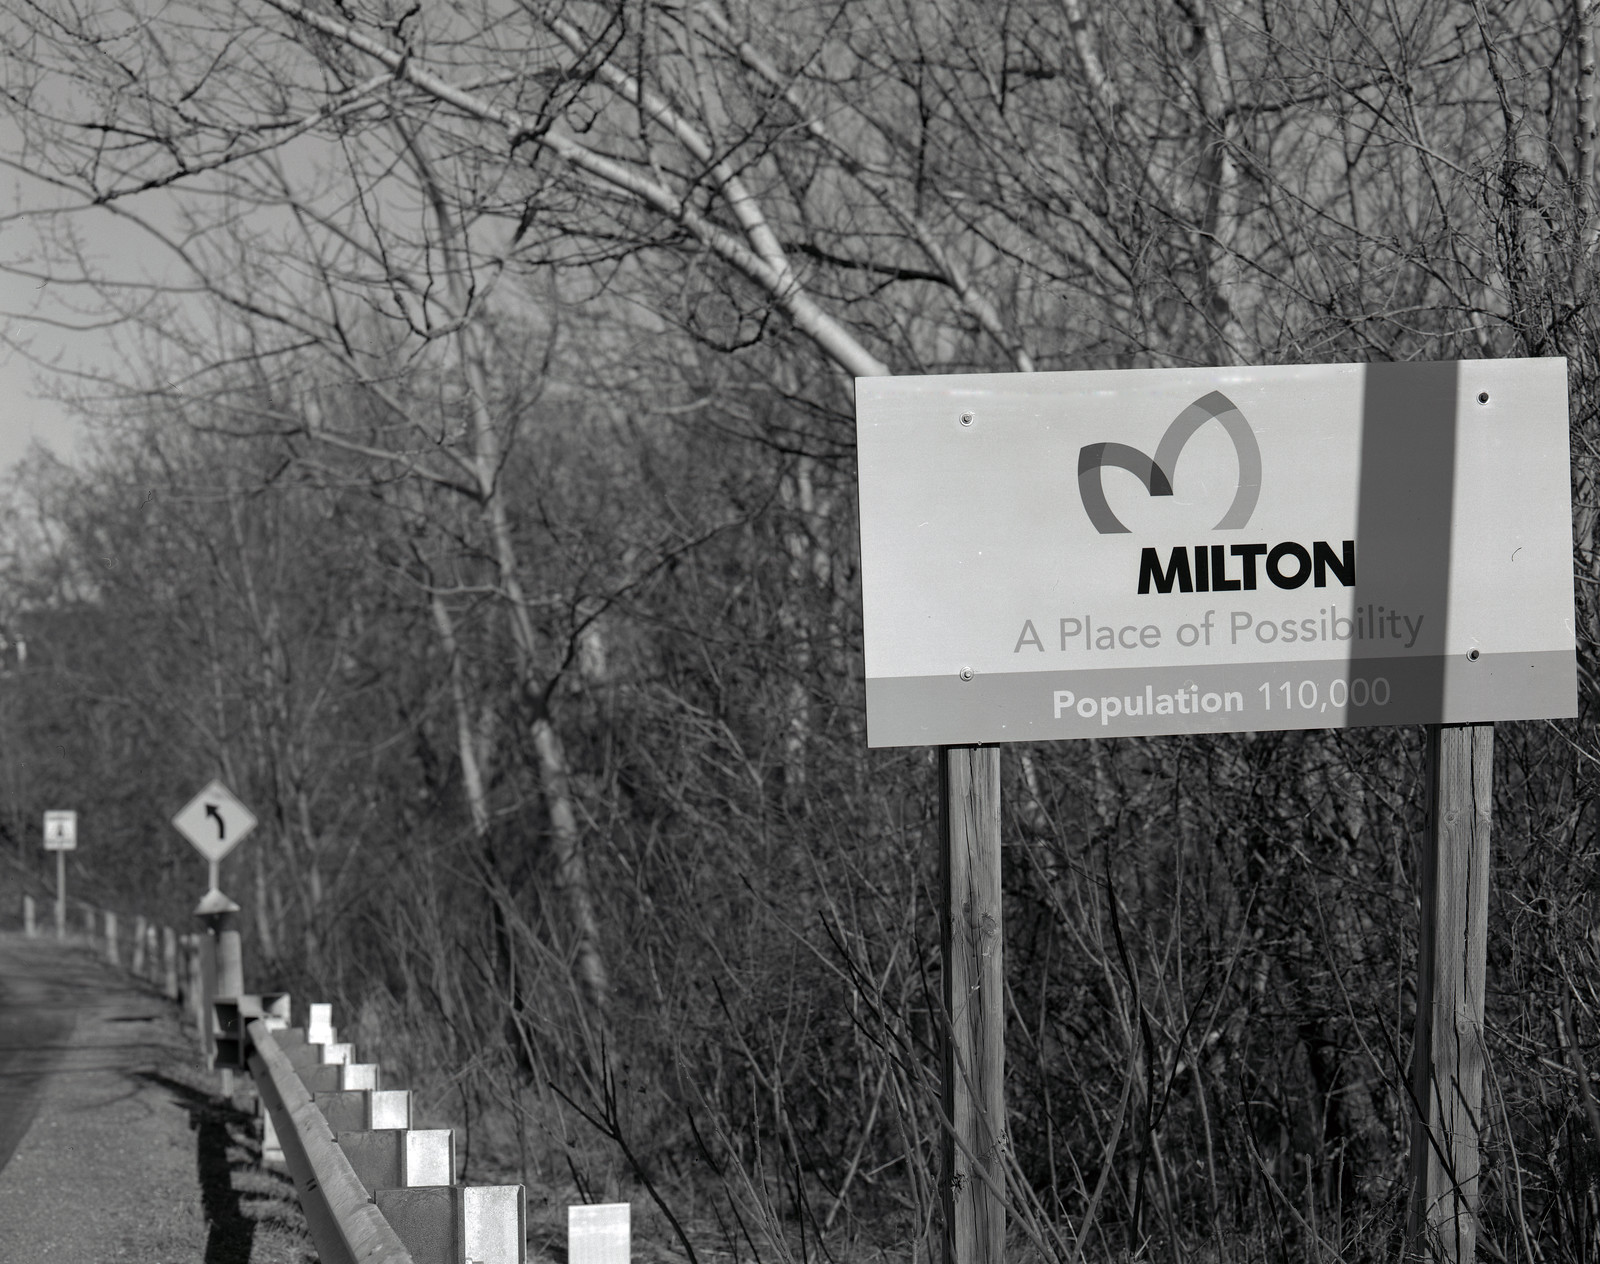 HomeTown - 01 - Welcome to Milton